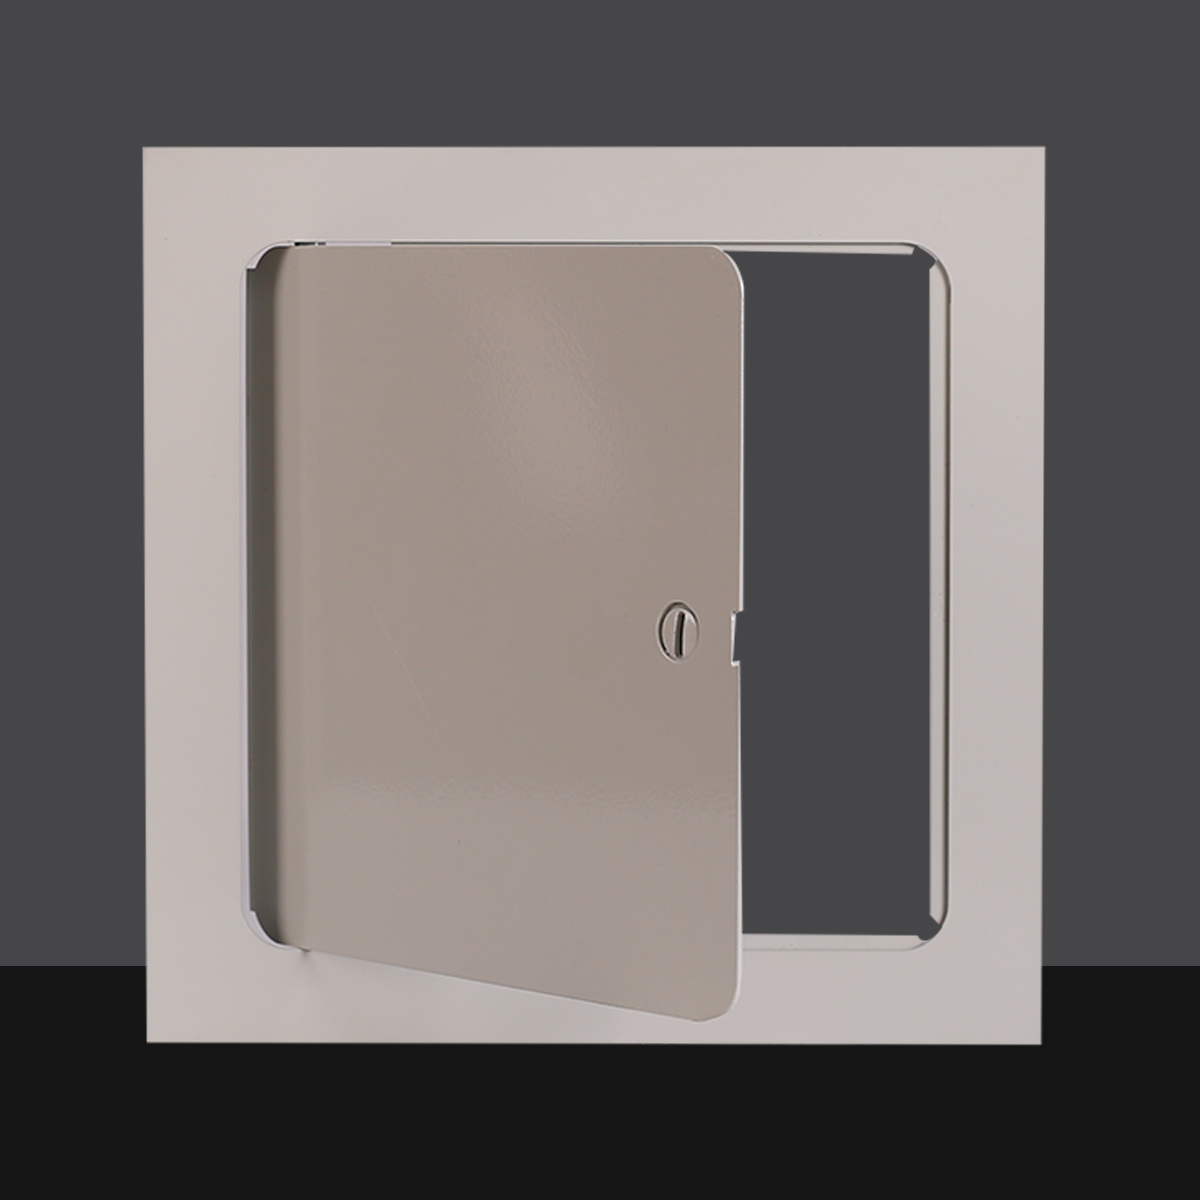 China Access Hatches/Roof Hatch/Hatch Door AP7050 & China Access Hatches/Roof Hatch/Hatch Door AP7050 Photos u0026 Pictures ...